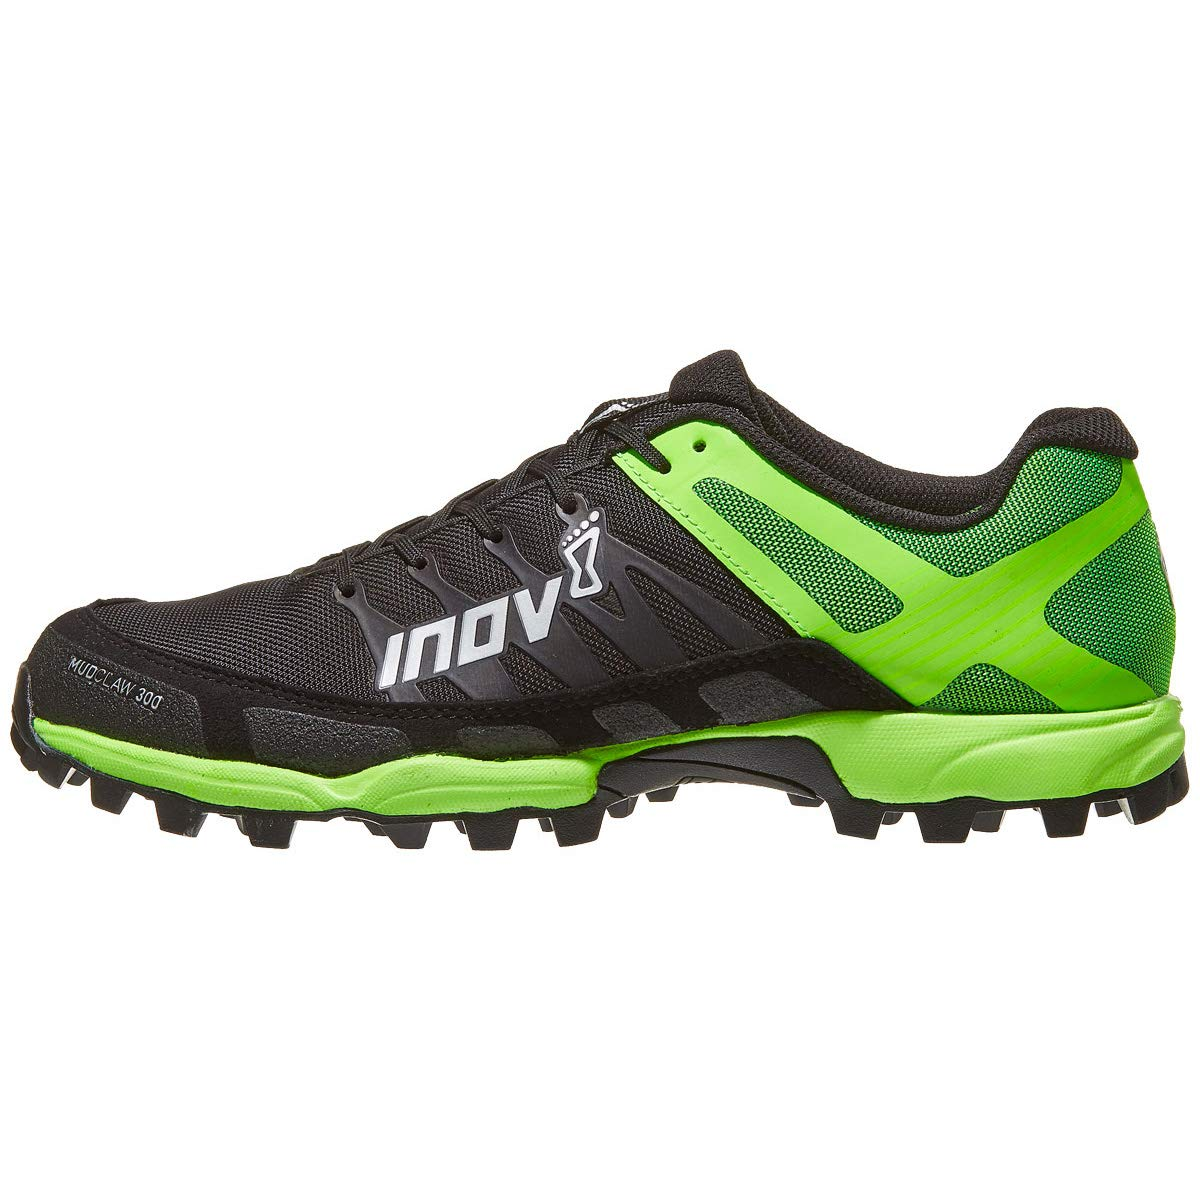 Image of Athletic Inov-8 Men's Mudclaw 300 Running Shoes - Black/Green - 000770-BKGR-P-01